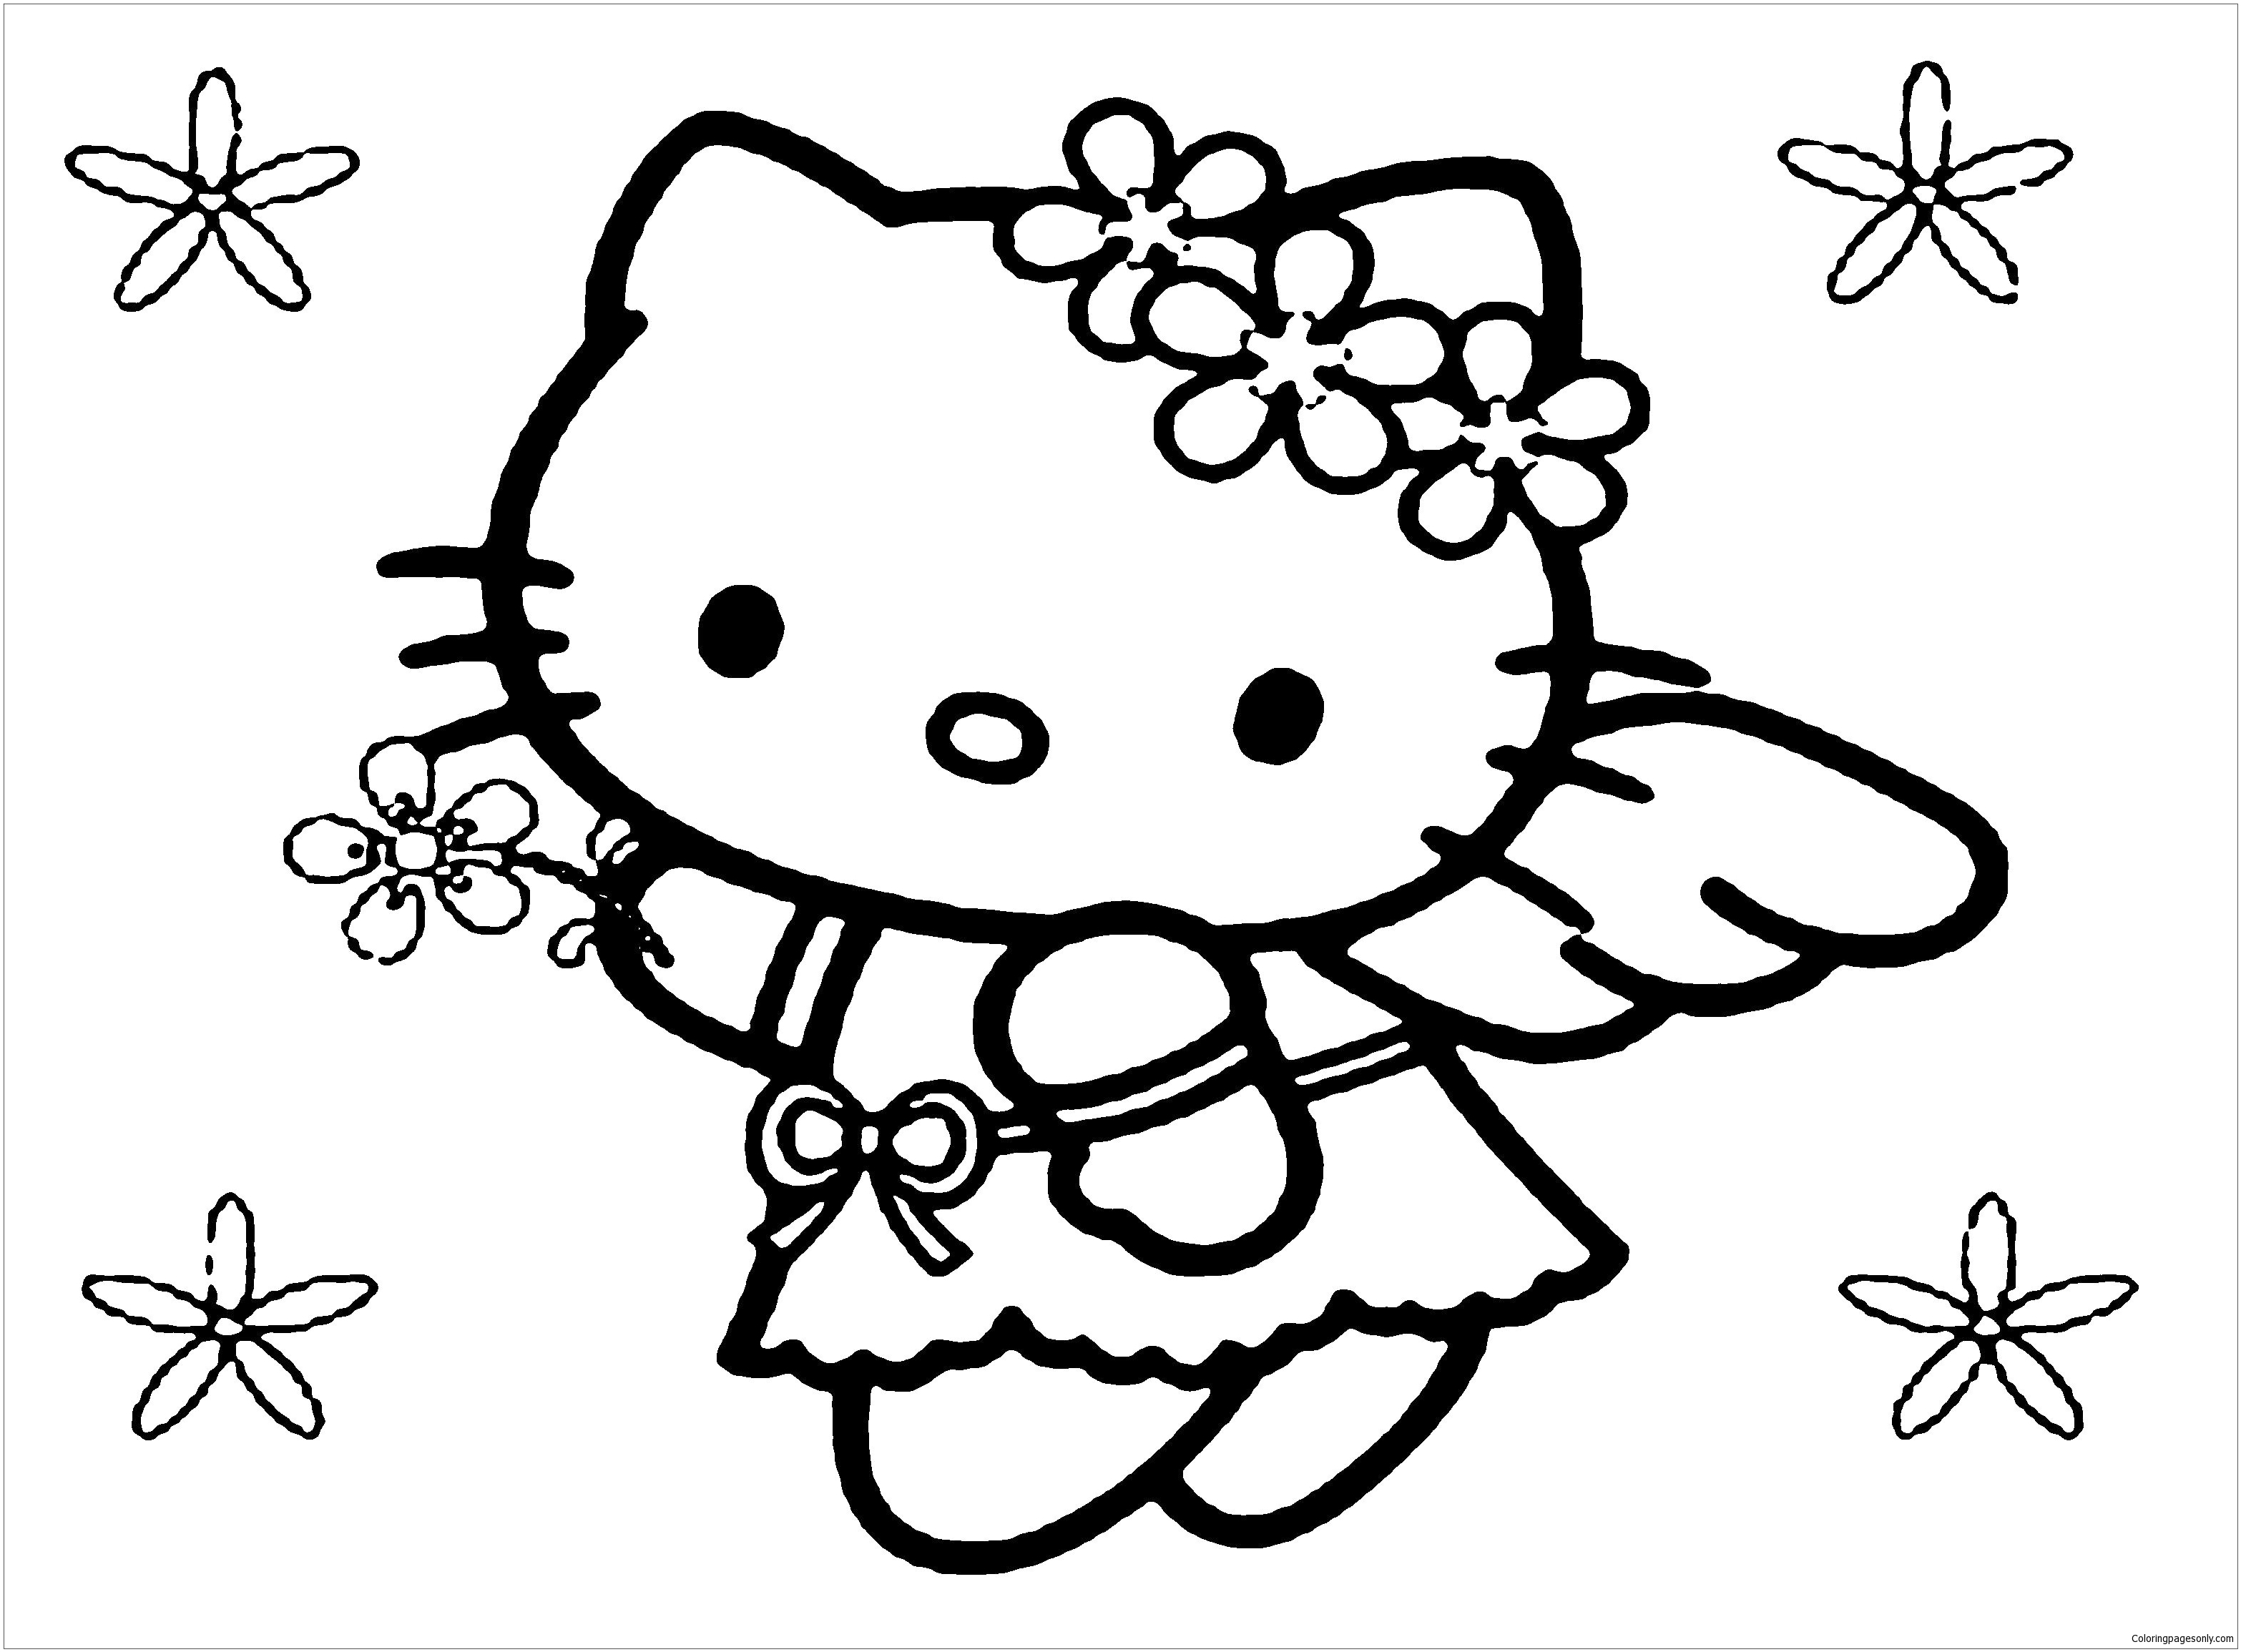 2012 02 01 archive also Princess Crown Template 2 in addition Fairy Hello Kitty likewise Alittlecraftinyourday likewise Happy Birthday Vector Letters Ai 29128. on happy birthday fun